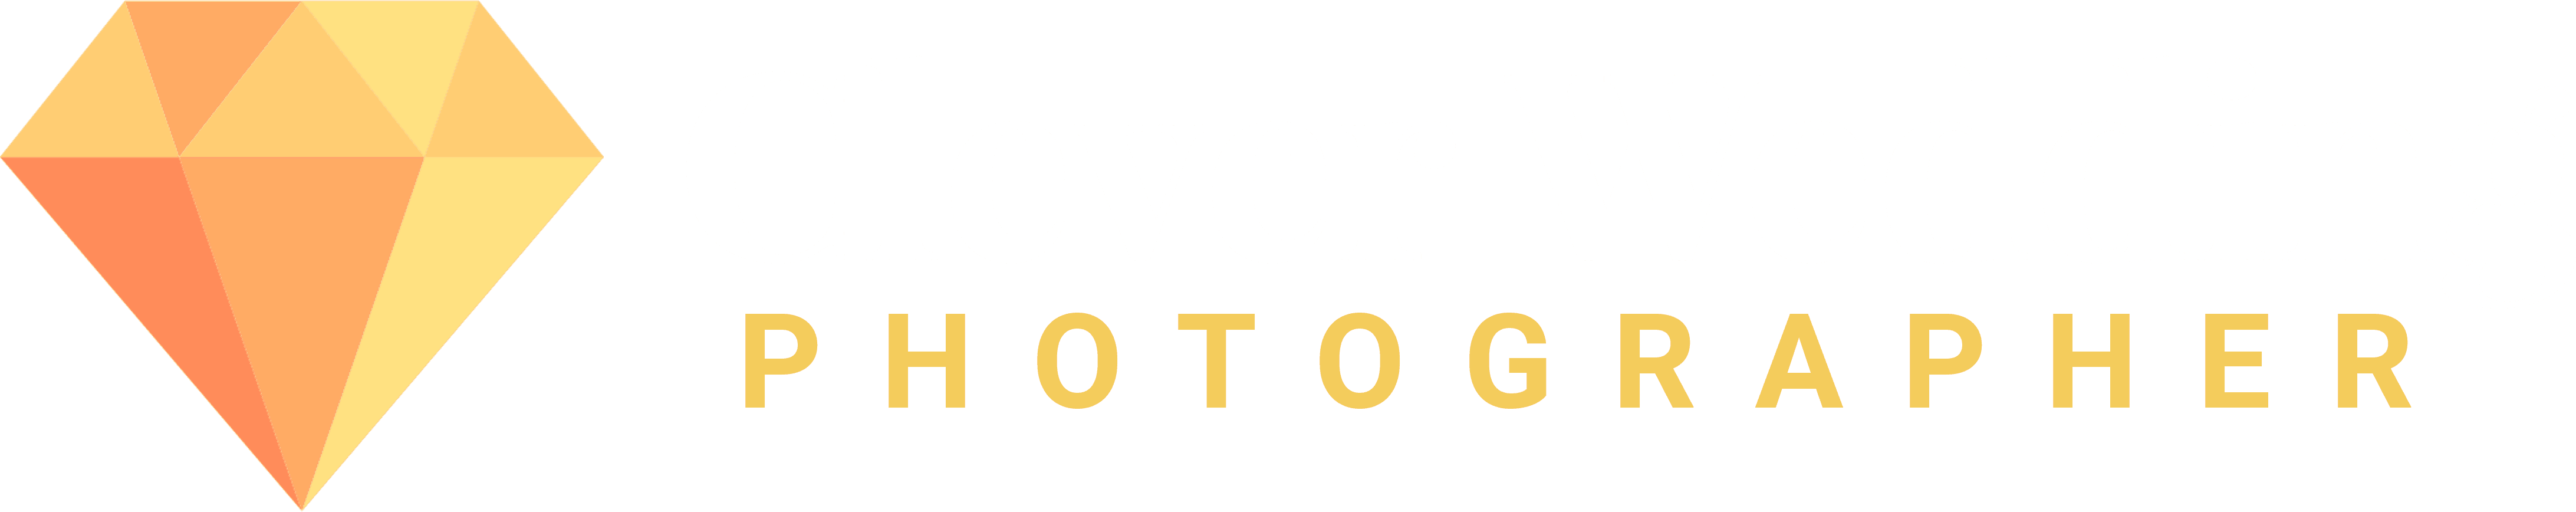 Clever Wedding Photographer Logo